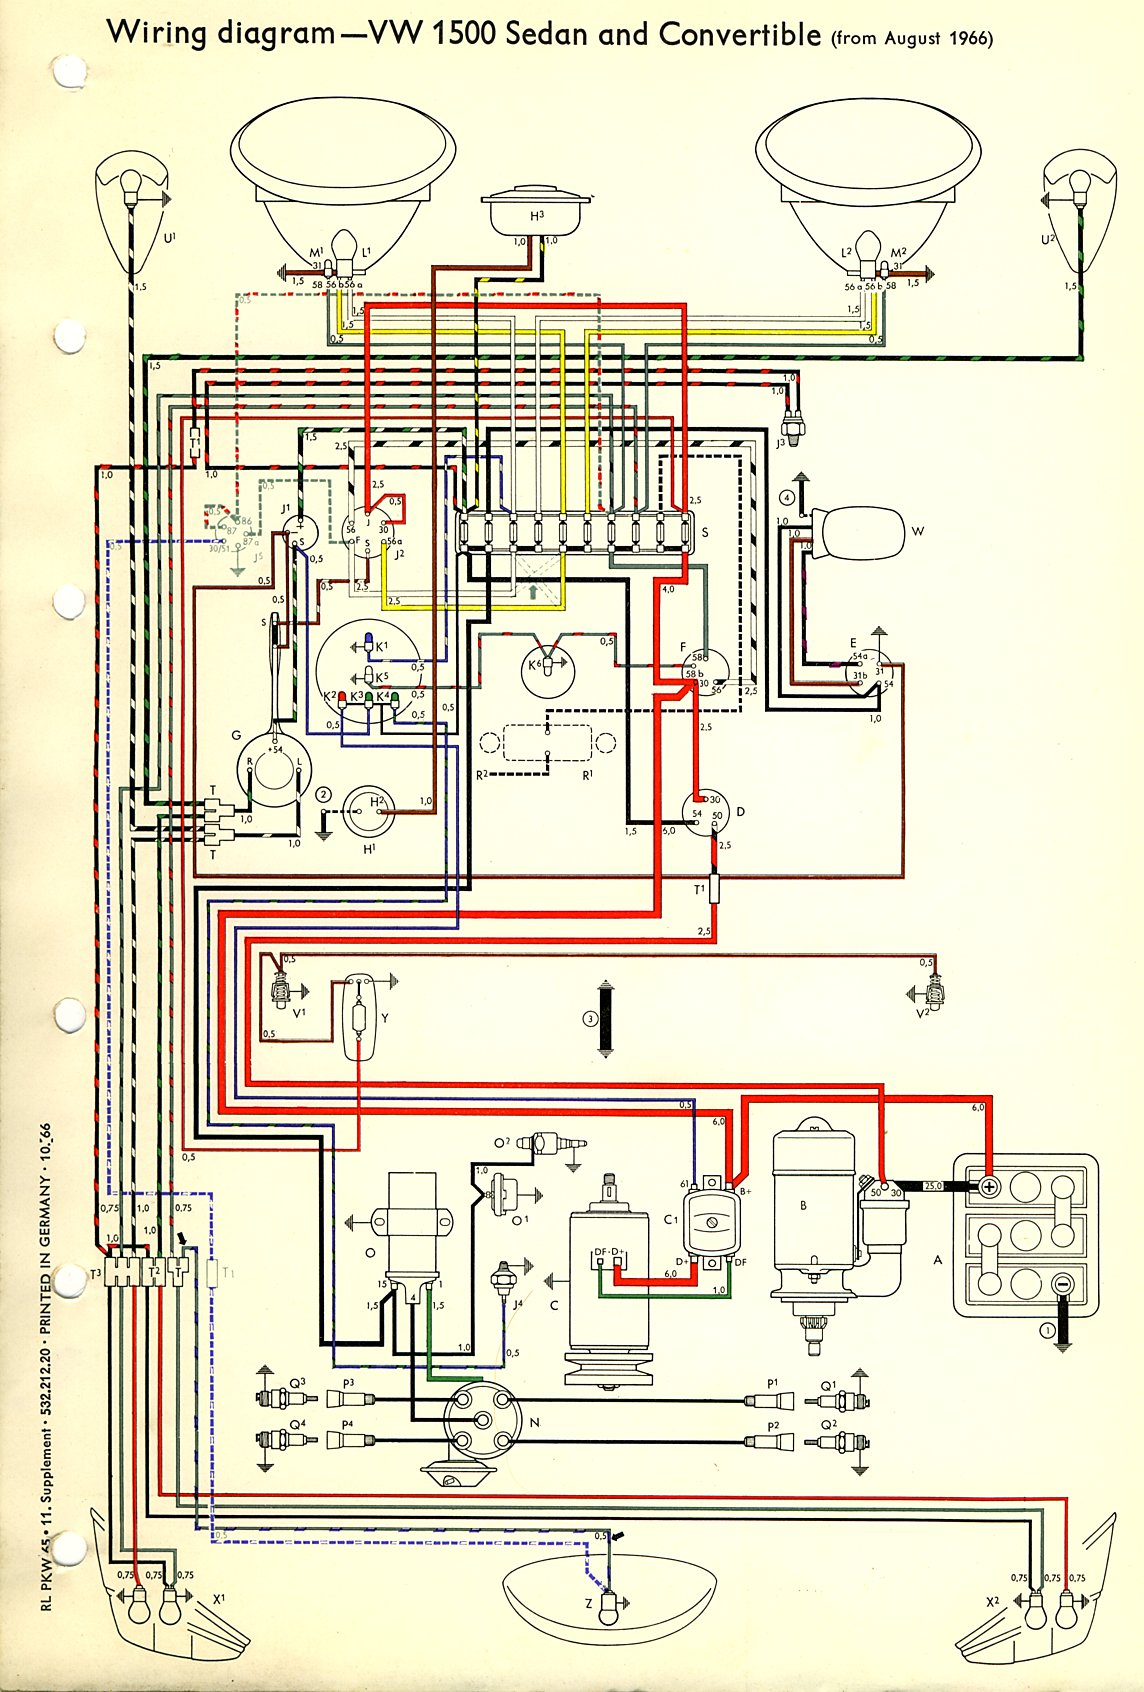 Type 1 Wiring Diagrams 1972 Chevelle Engine Bracket Diagram